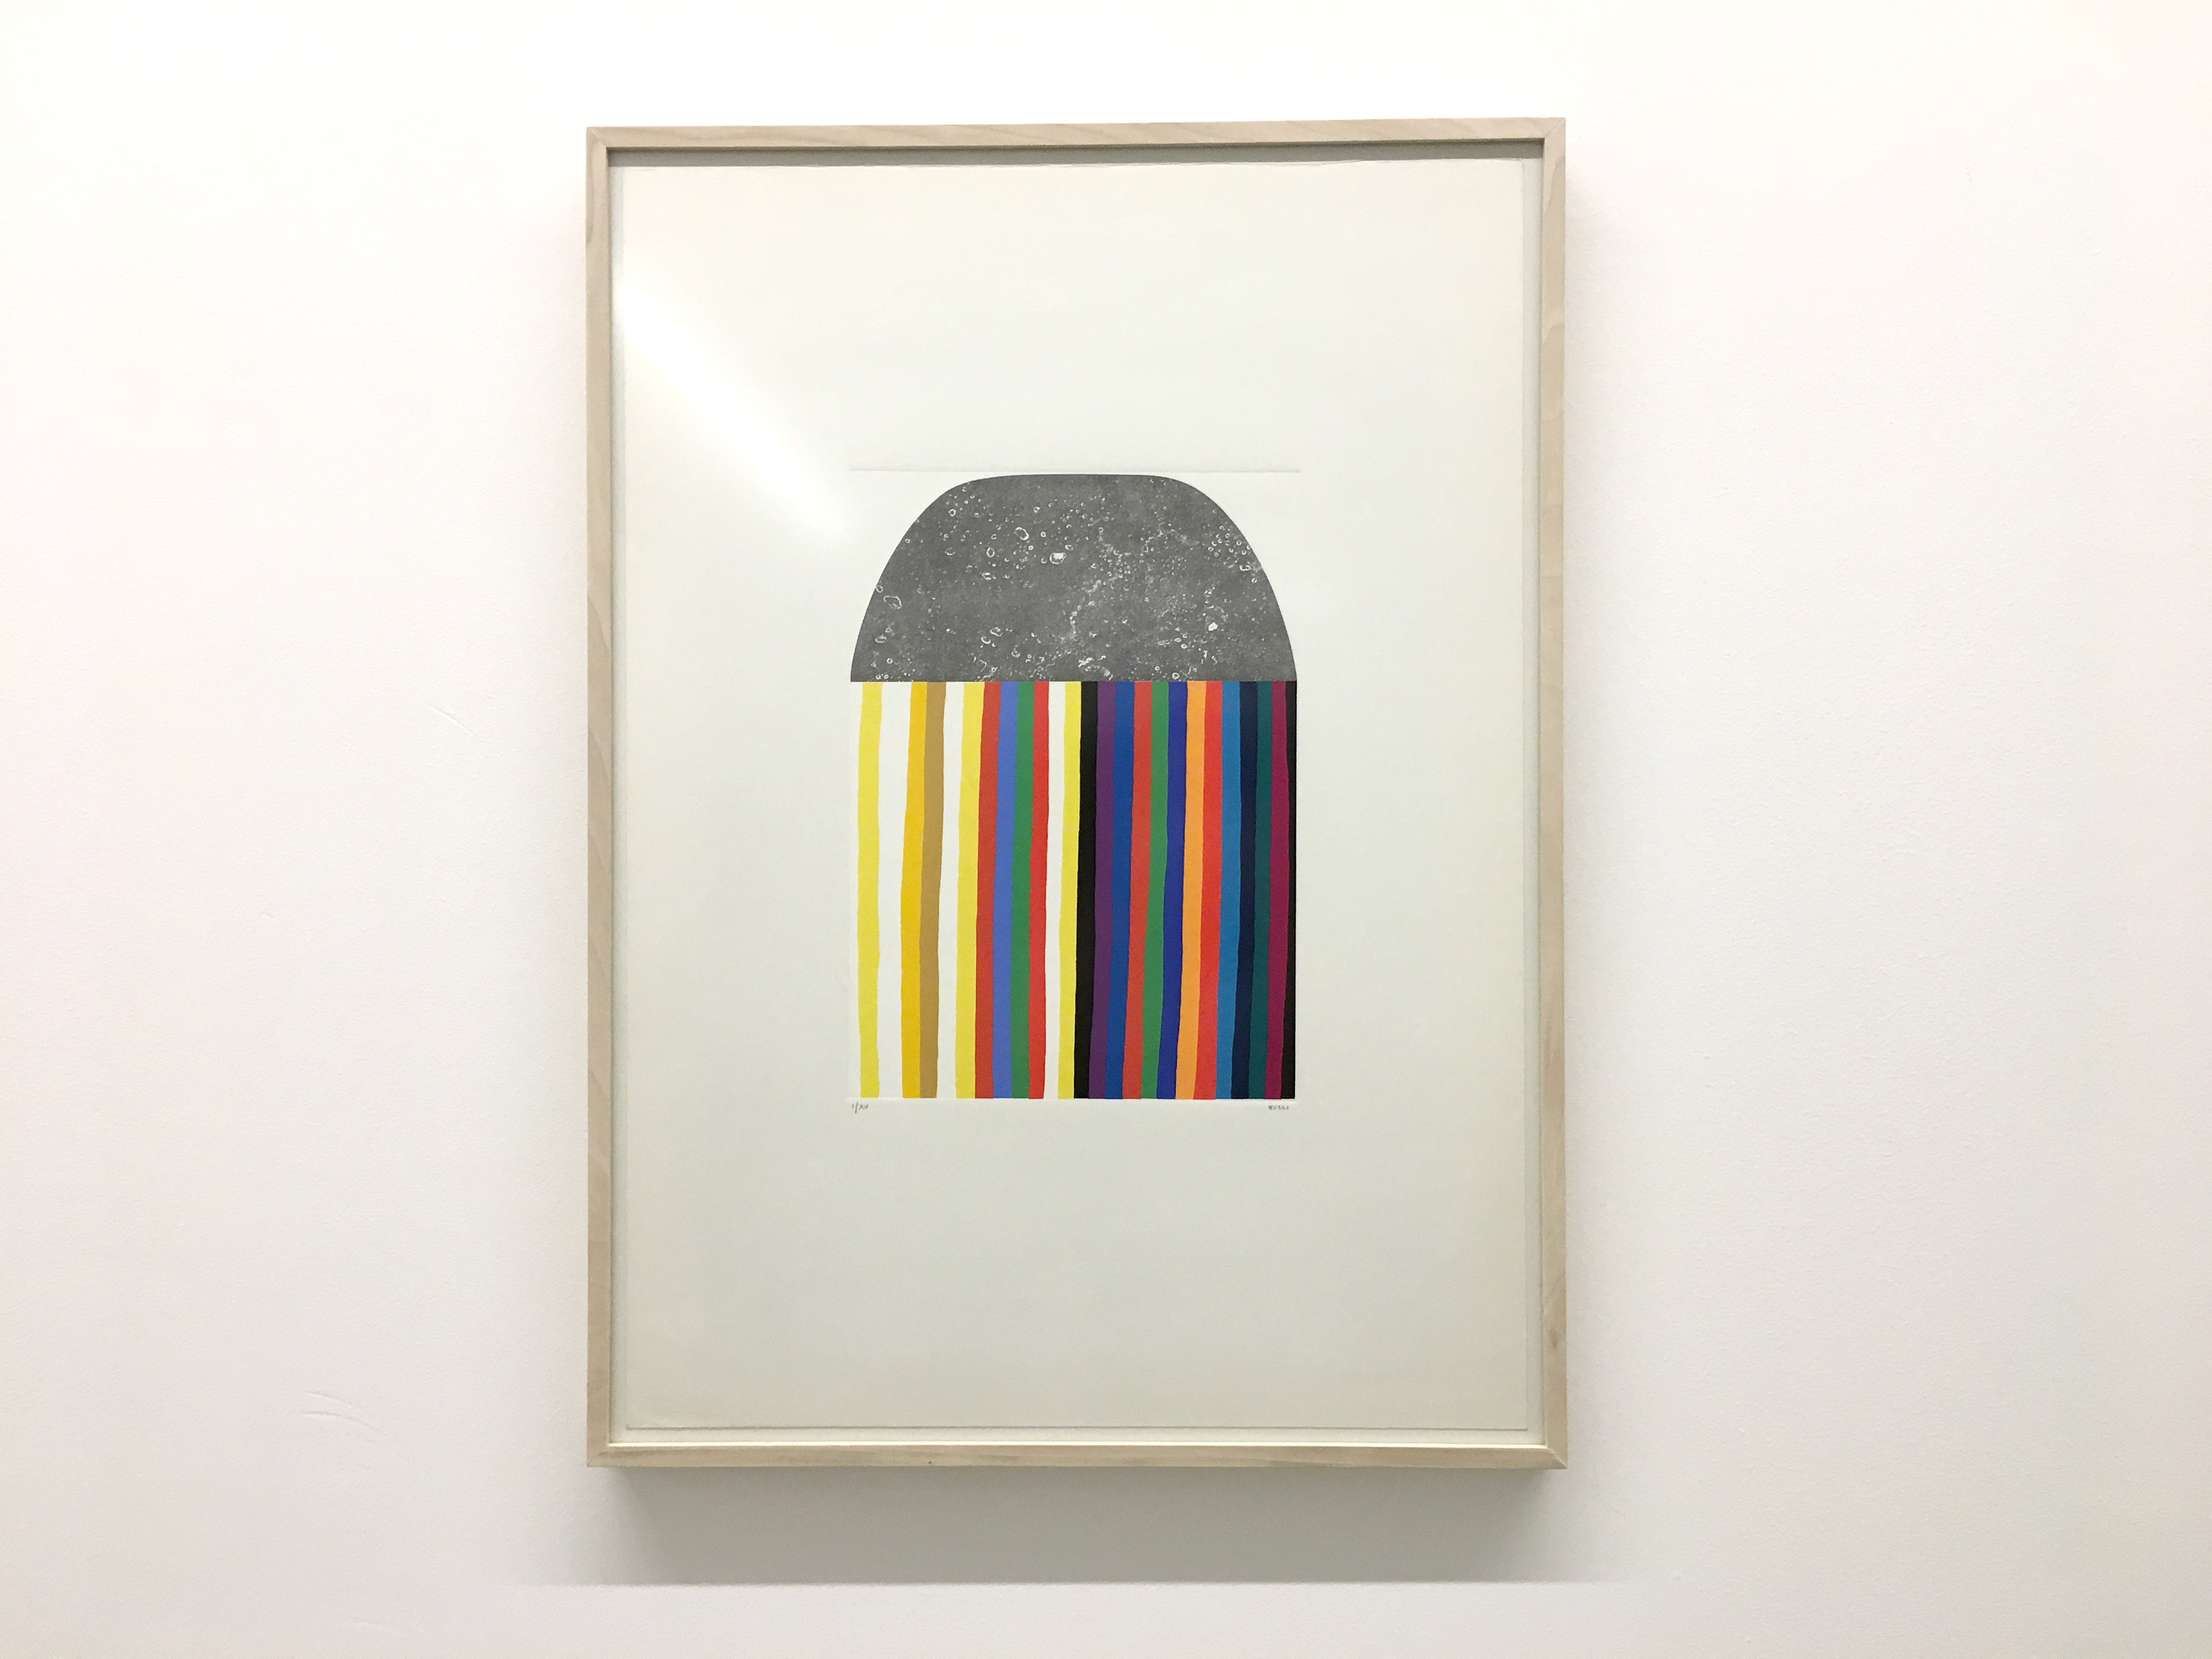 Colourful Burri Artwork Print